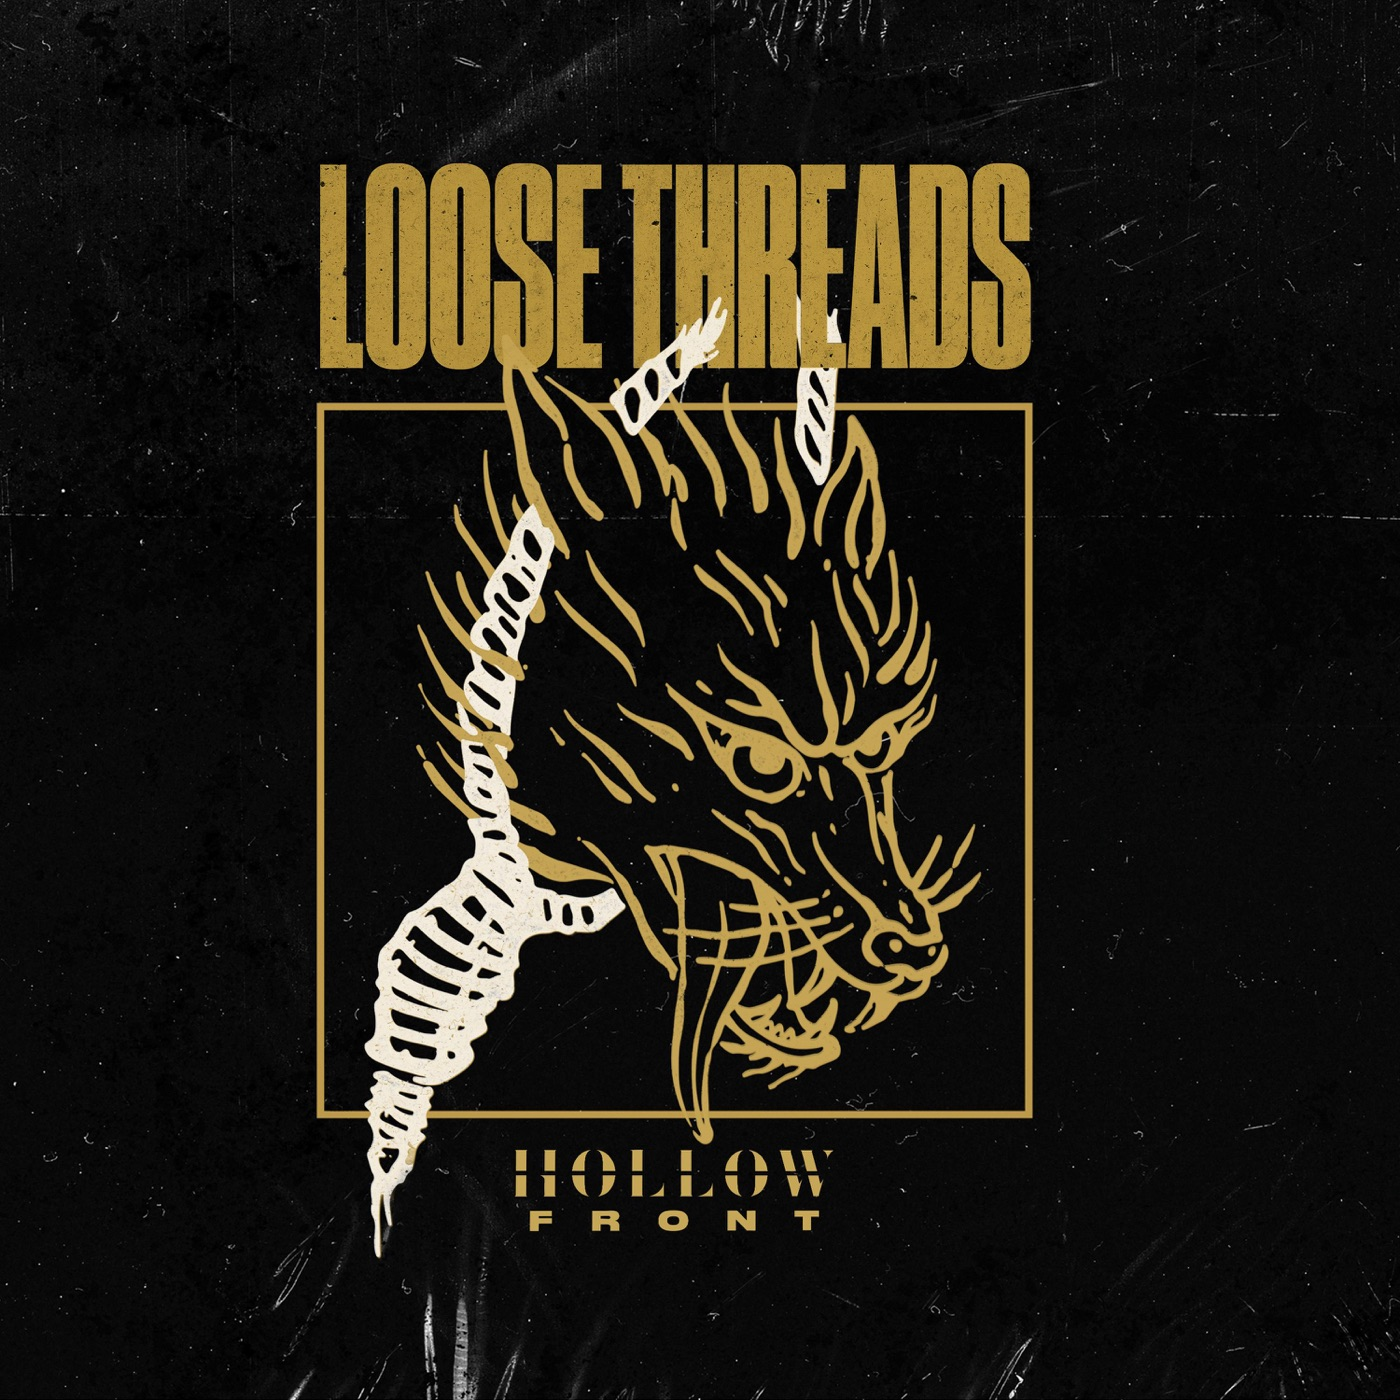 Hollow Front - Loose Threads (2020)